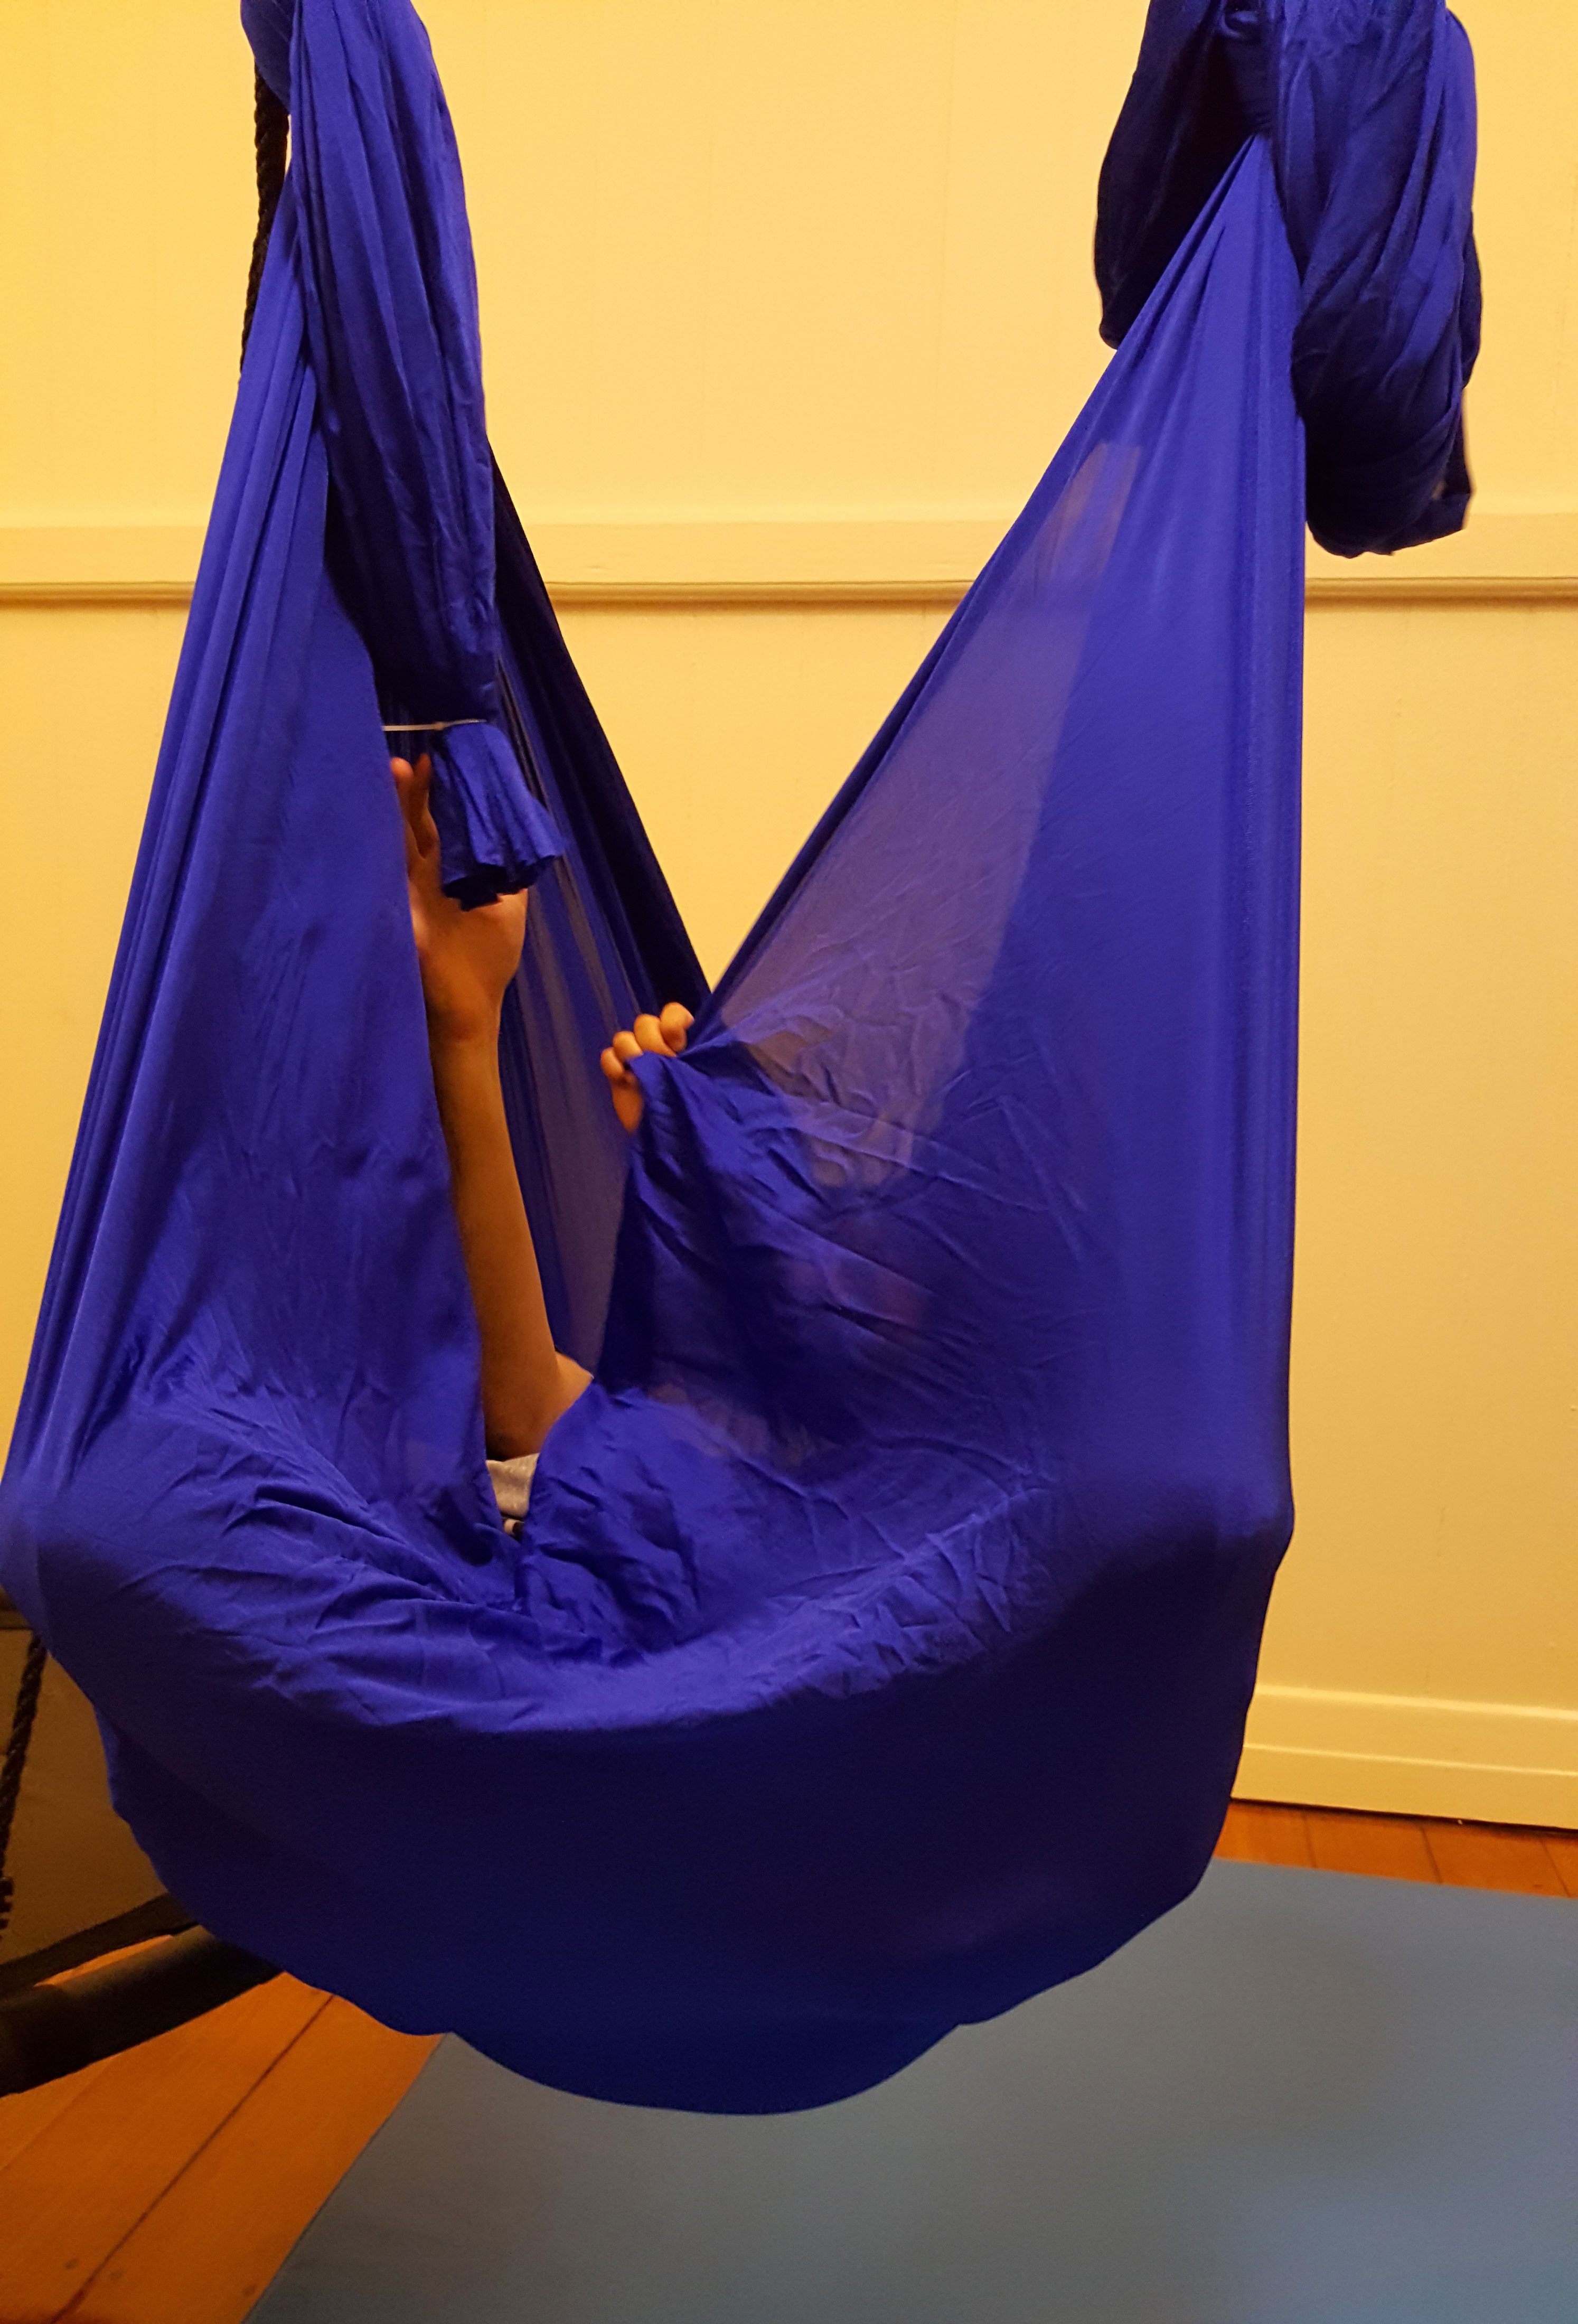 Large Blue Nylon Wrap Therapy Swing 450x250cm Heavenly